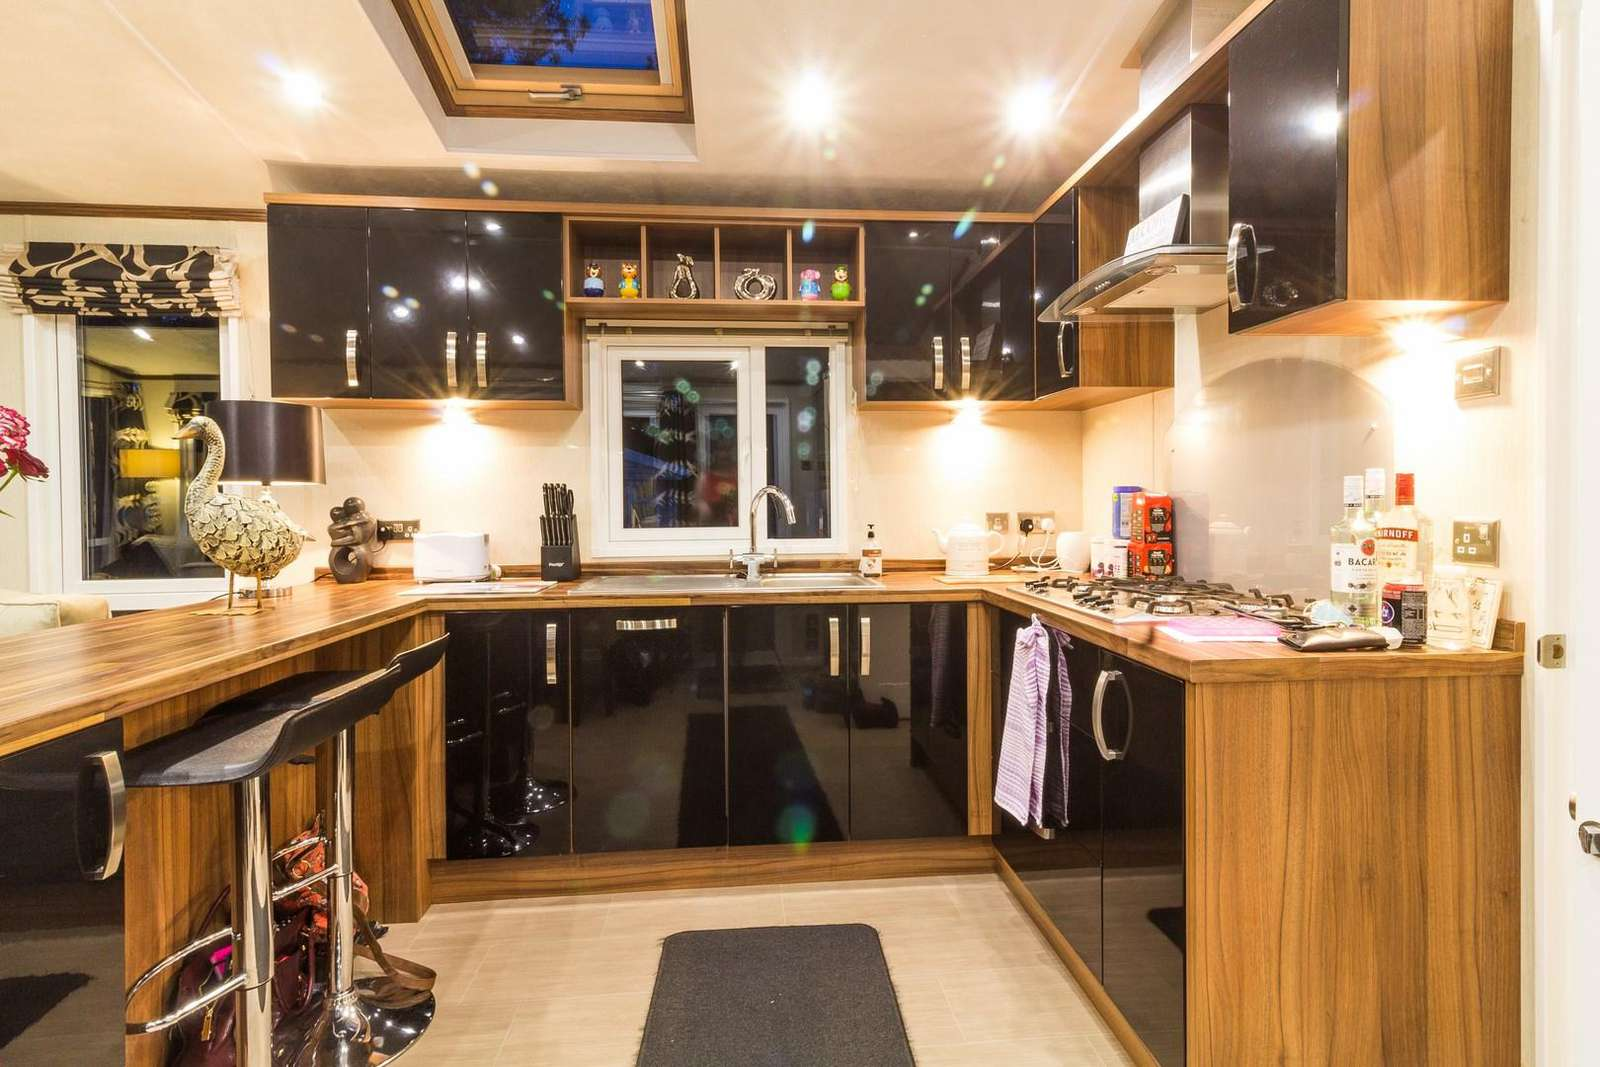 Modern and Stylish kitchen in this 6 berth luxury lodge at the Wild Duck Holiday Park.